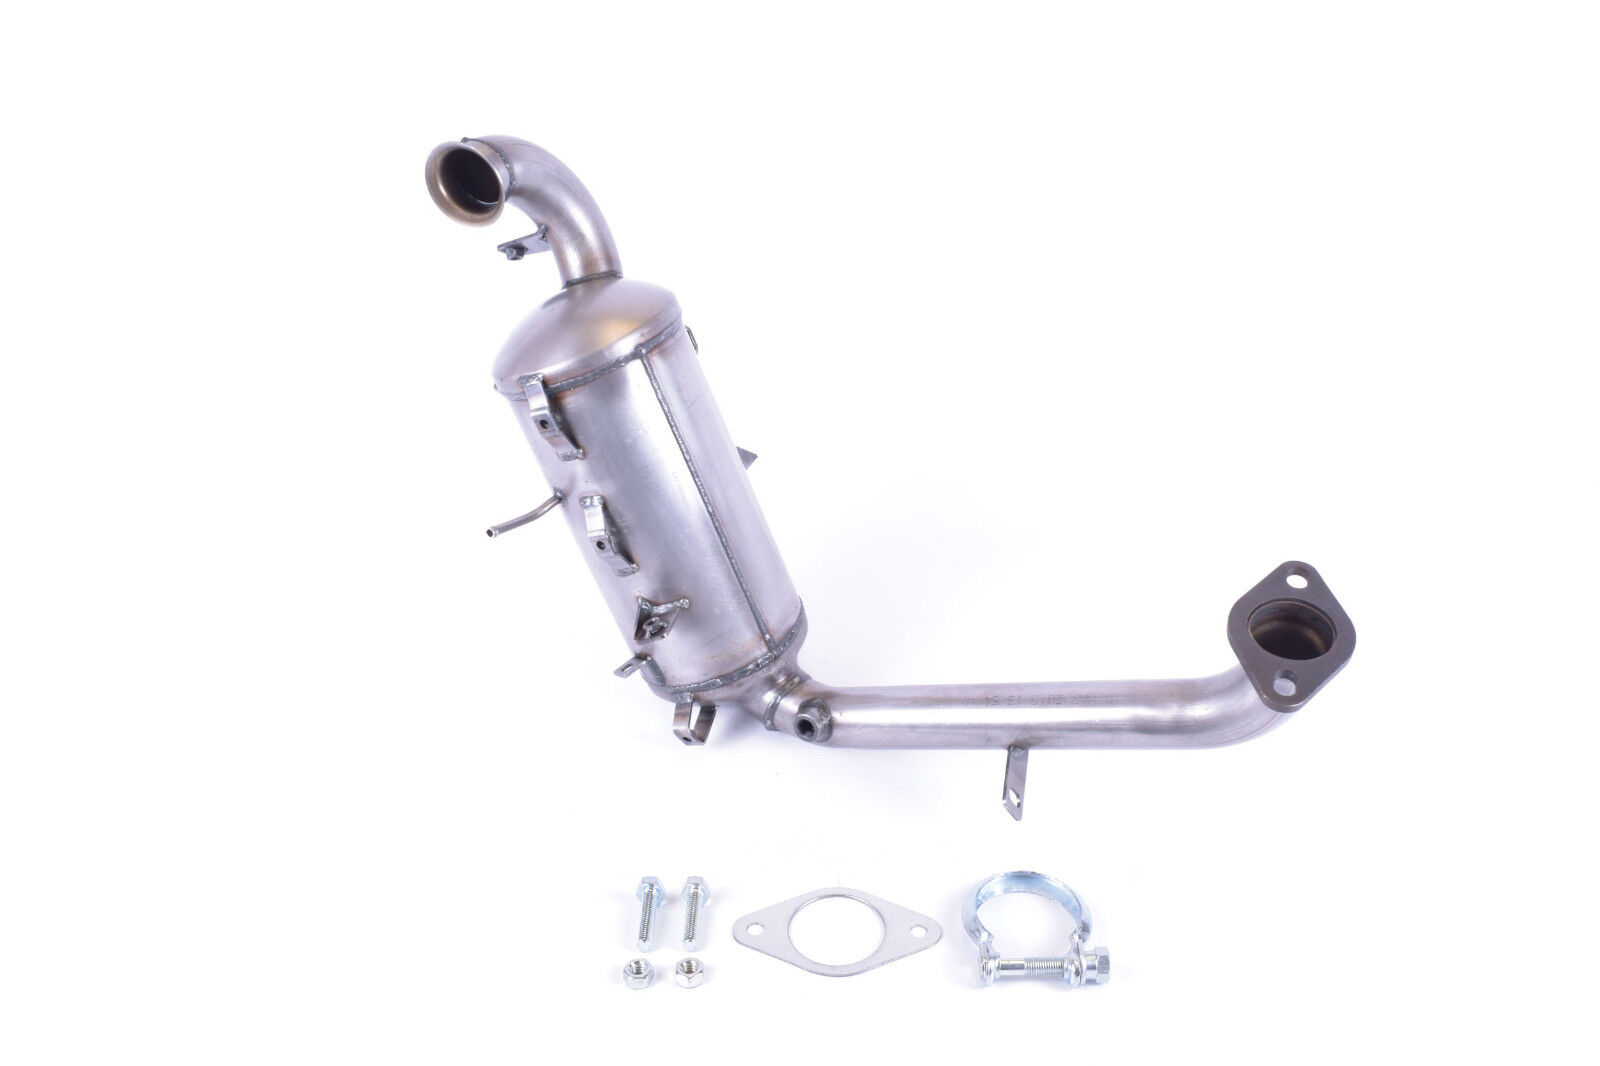 Details about FORD FOCUS VOLVO C30, S40, S80, V50, V70 1 6 DIESEL  PARTICULATE FILTER CAT & DPF